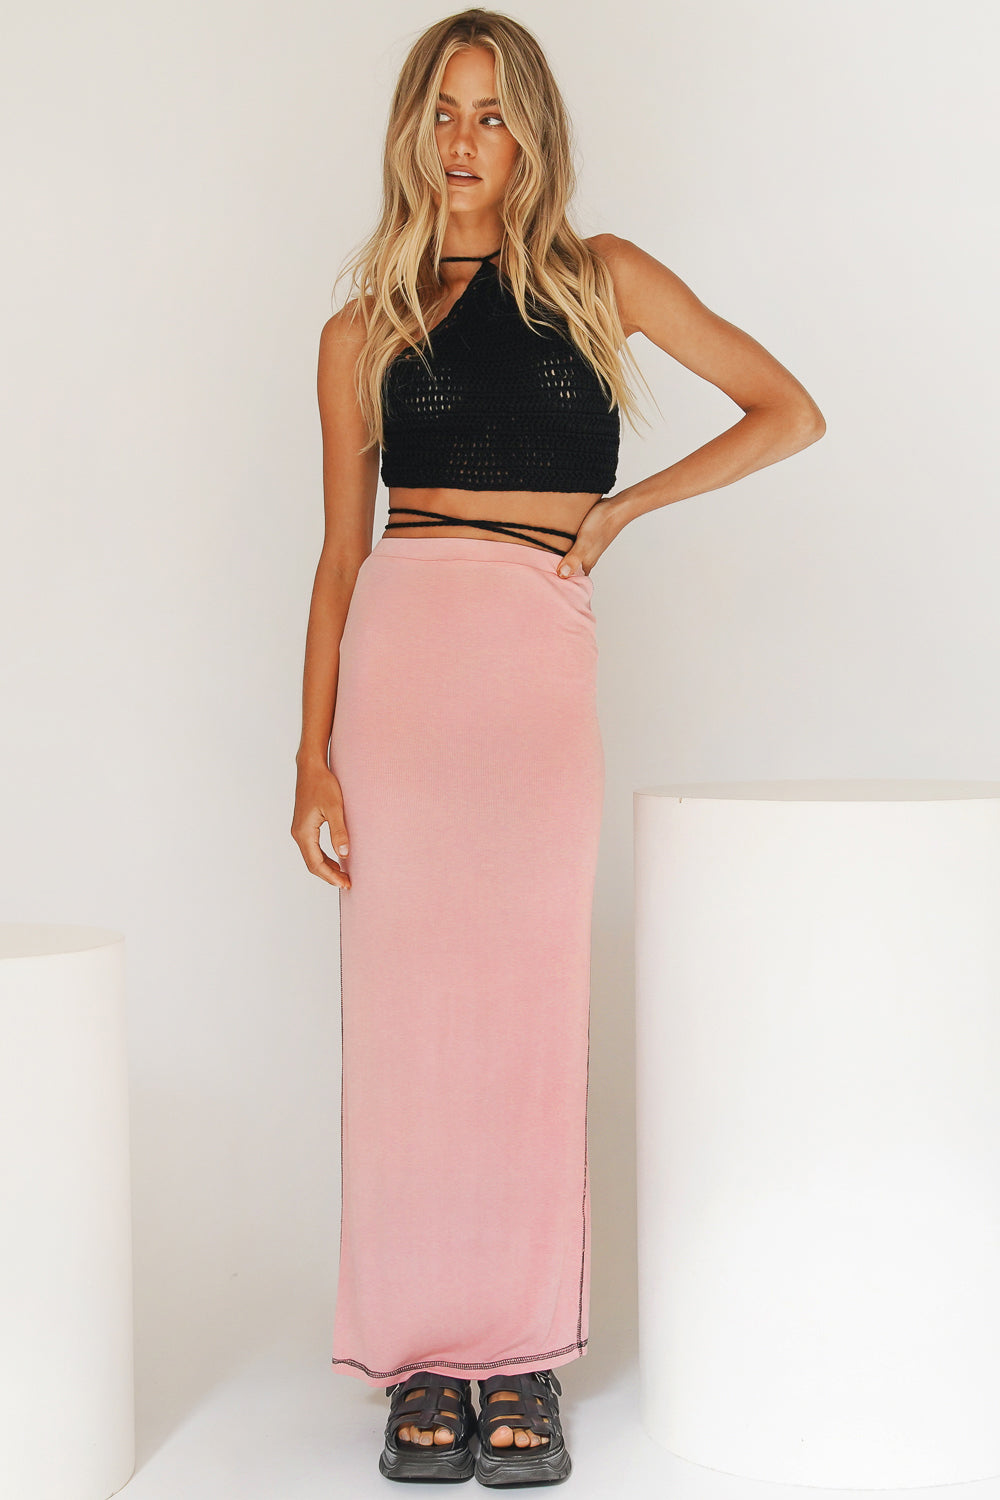 VRG GRL N.Y Based Ribbed Midi Skirt // Pink